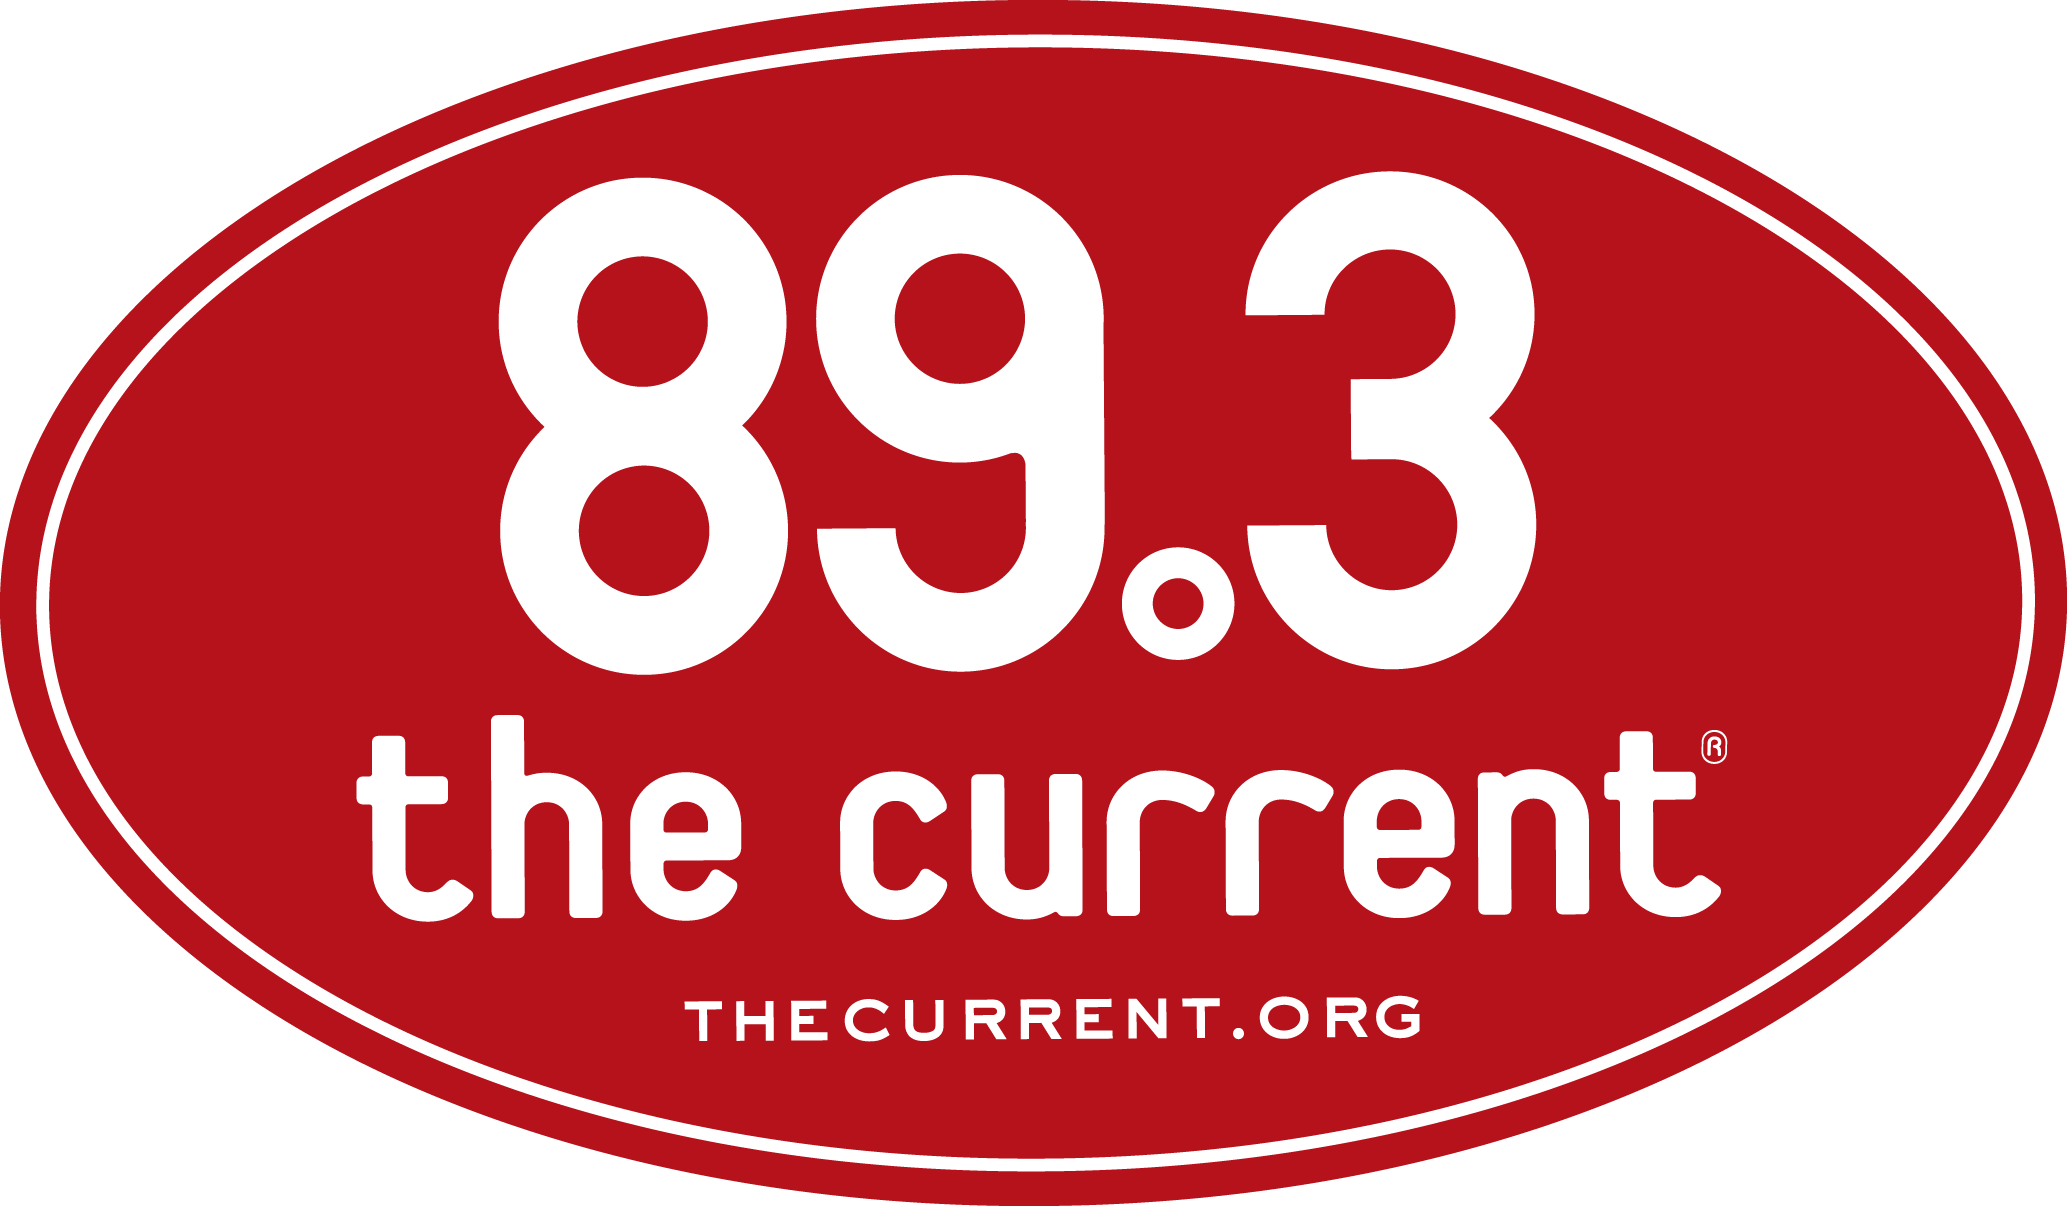 This event is sponsored by 89.3 The Current